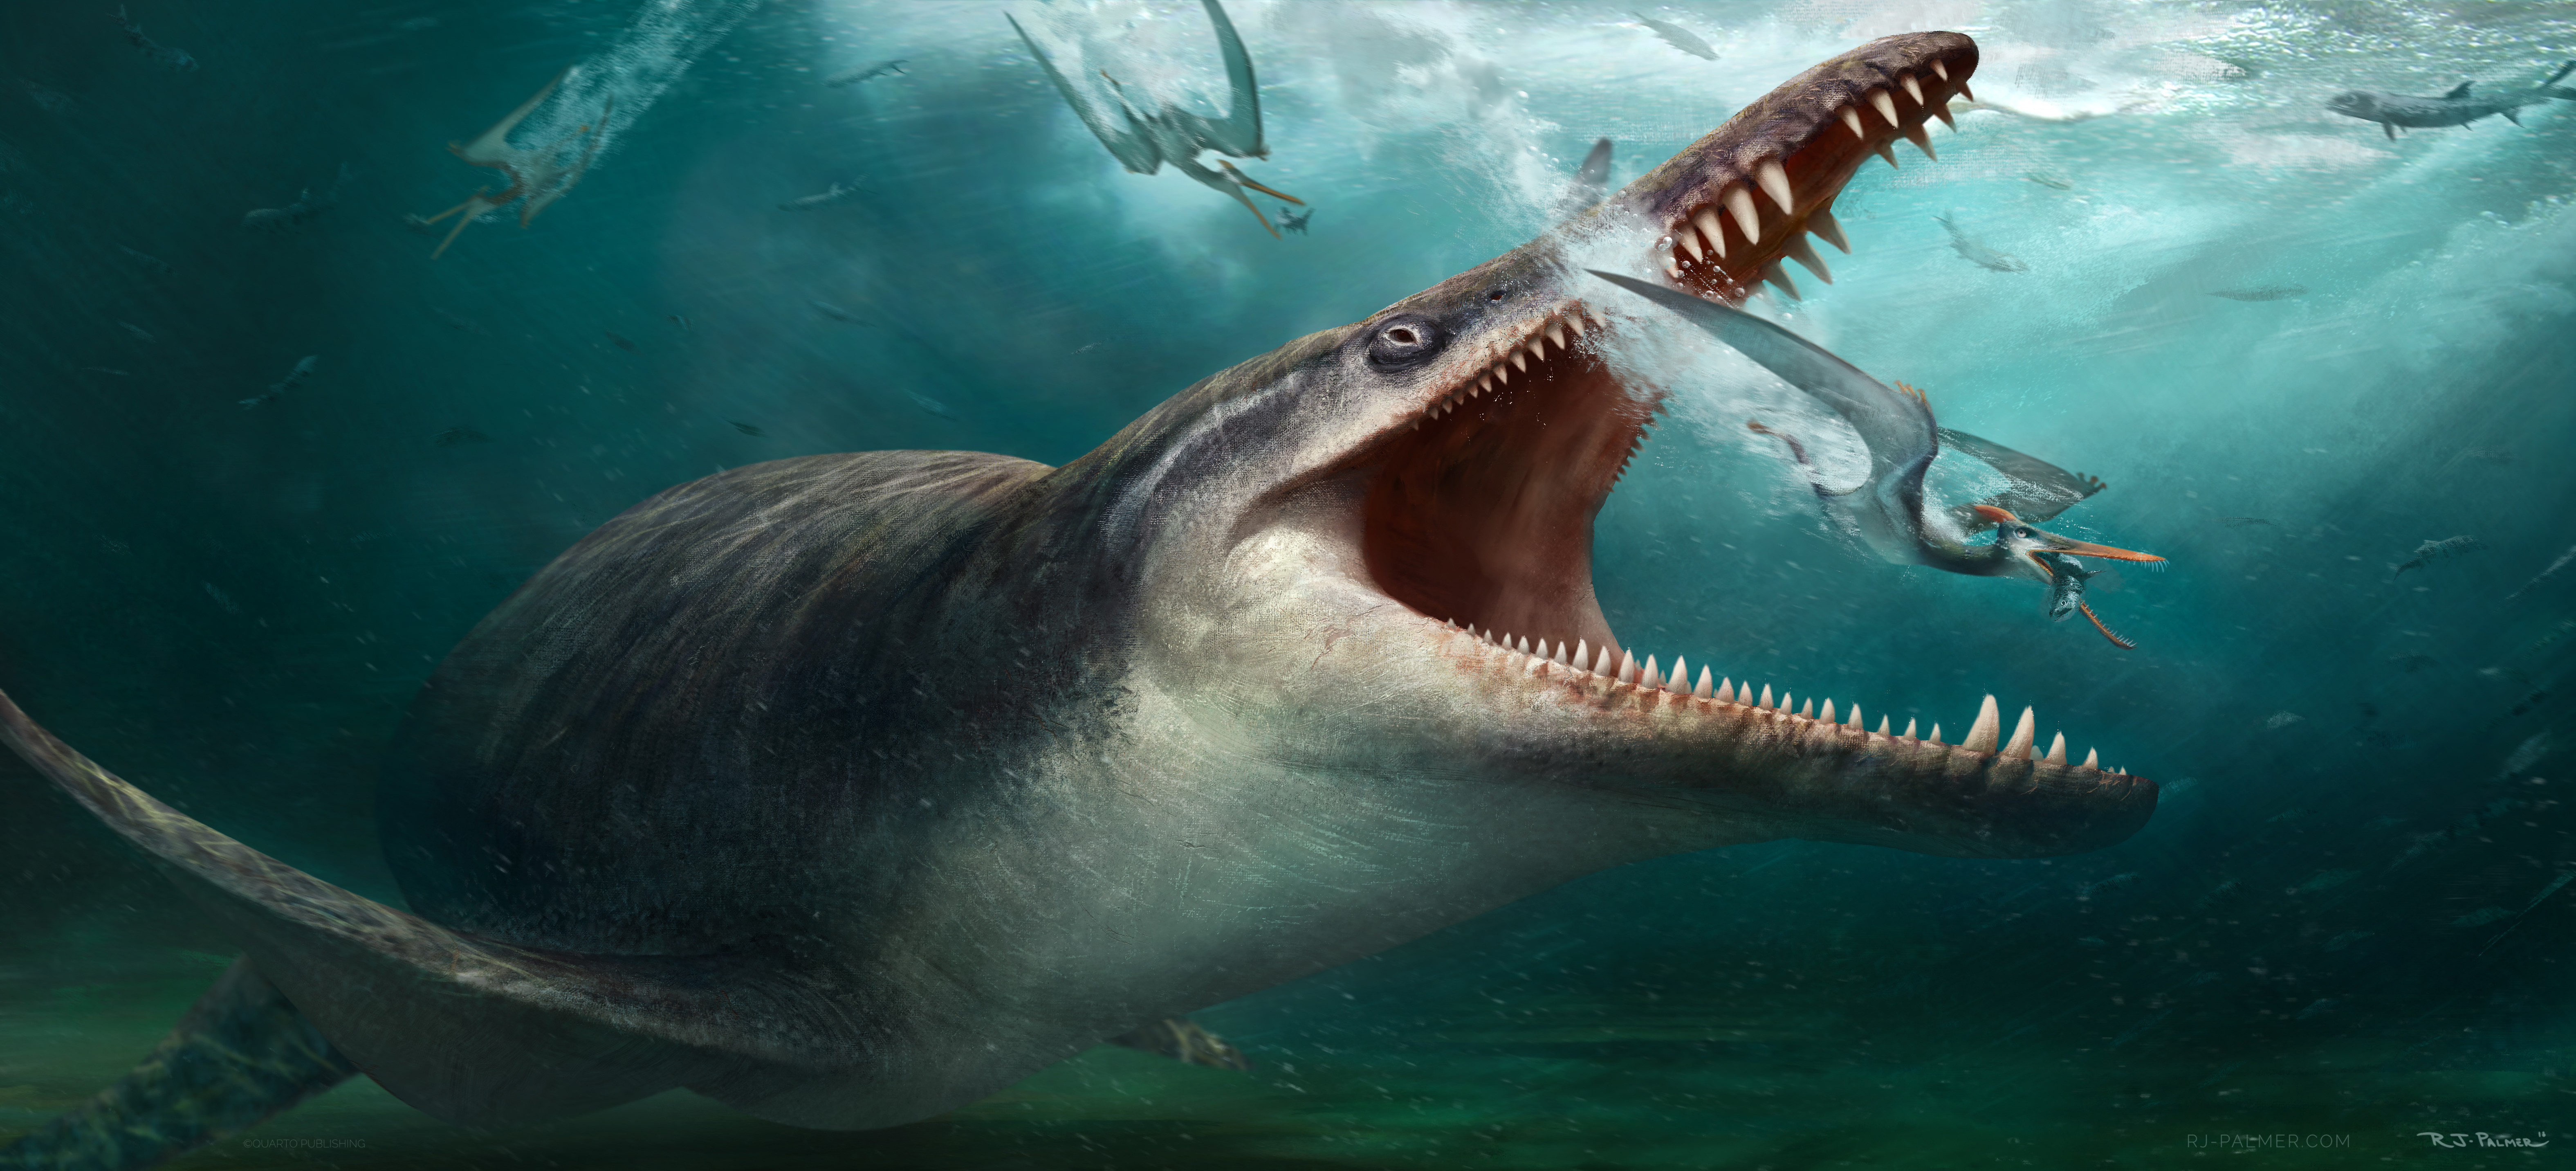 Named for the Greek titan Cronus, Kronosaurus was among the largest